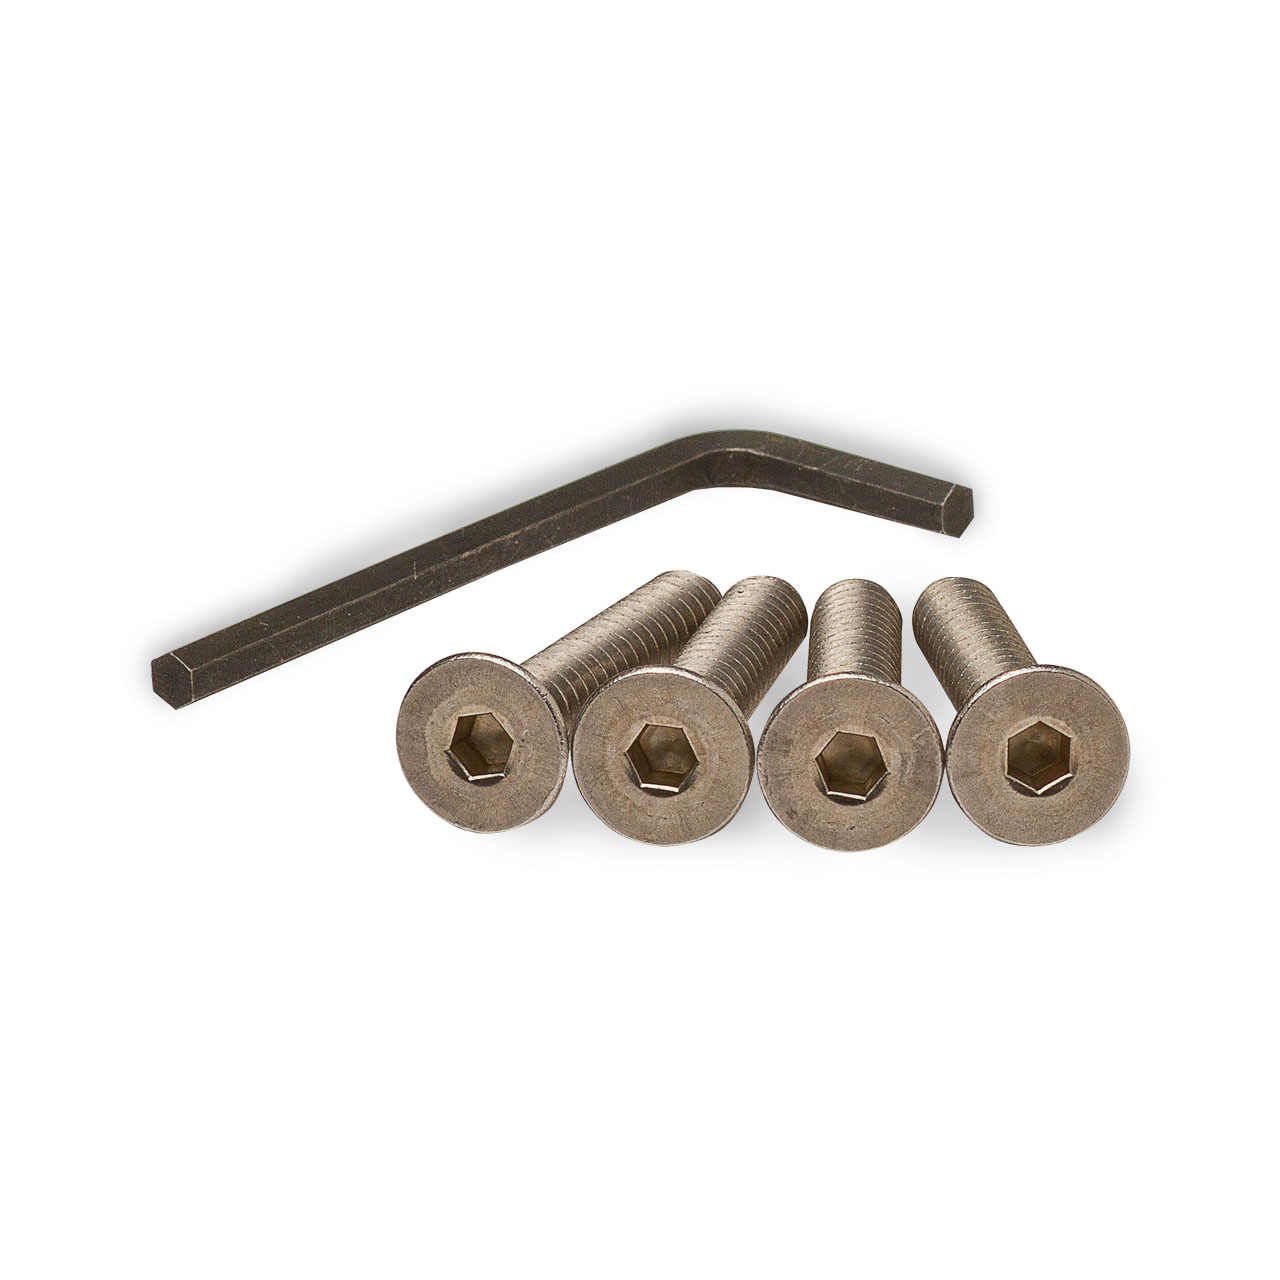 Orenco Systems Inc Orenco Rulb W Kit Lid Screw And